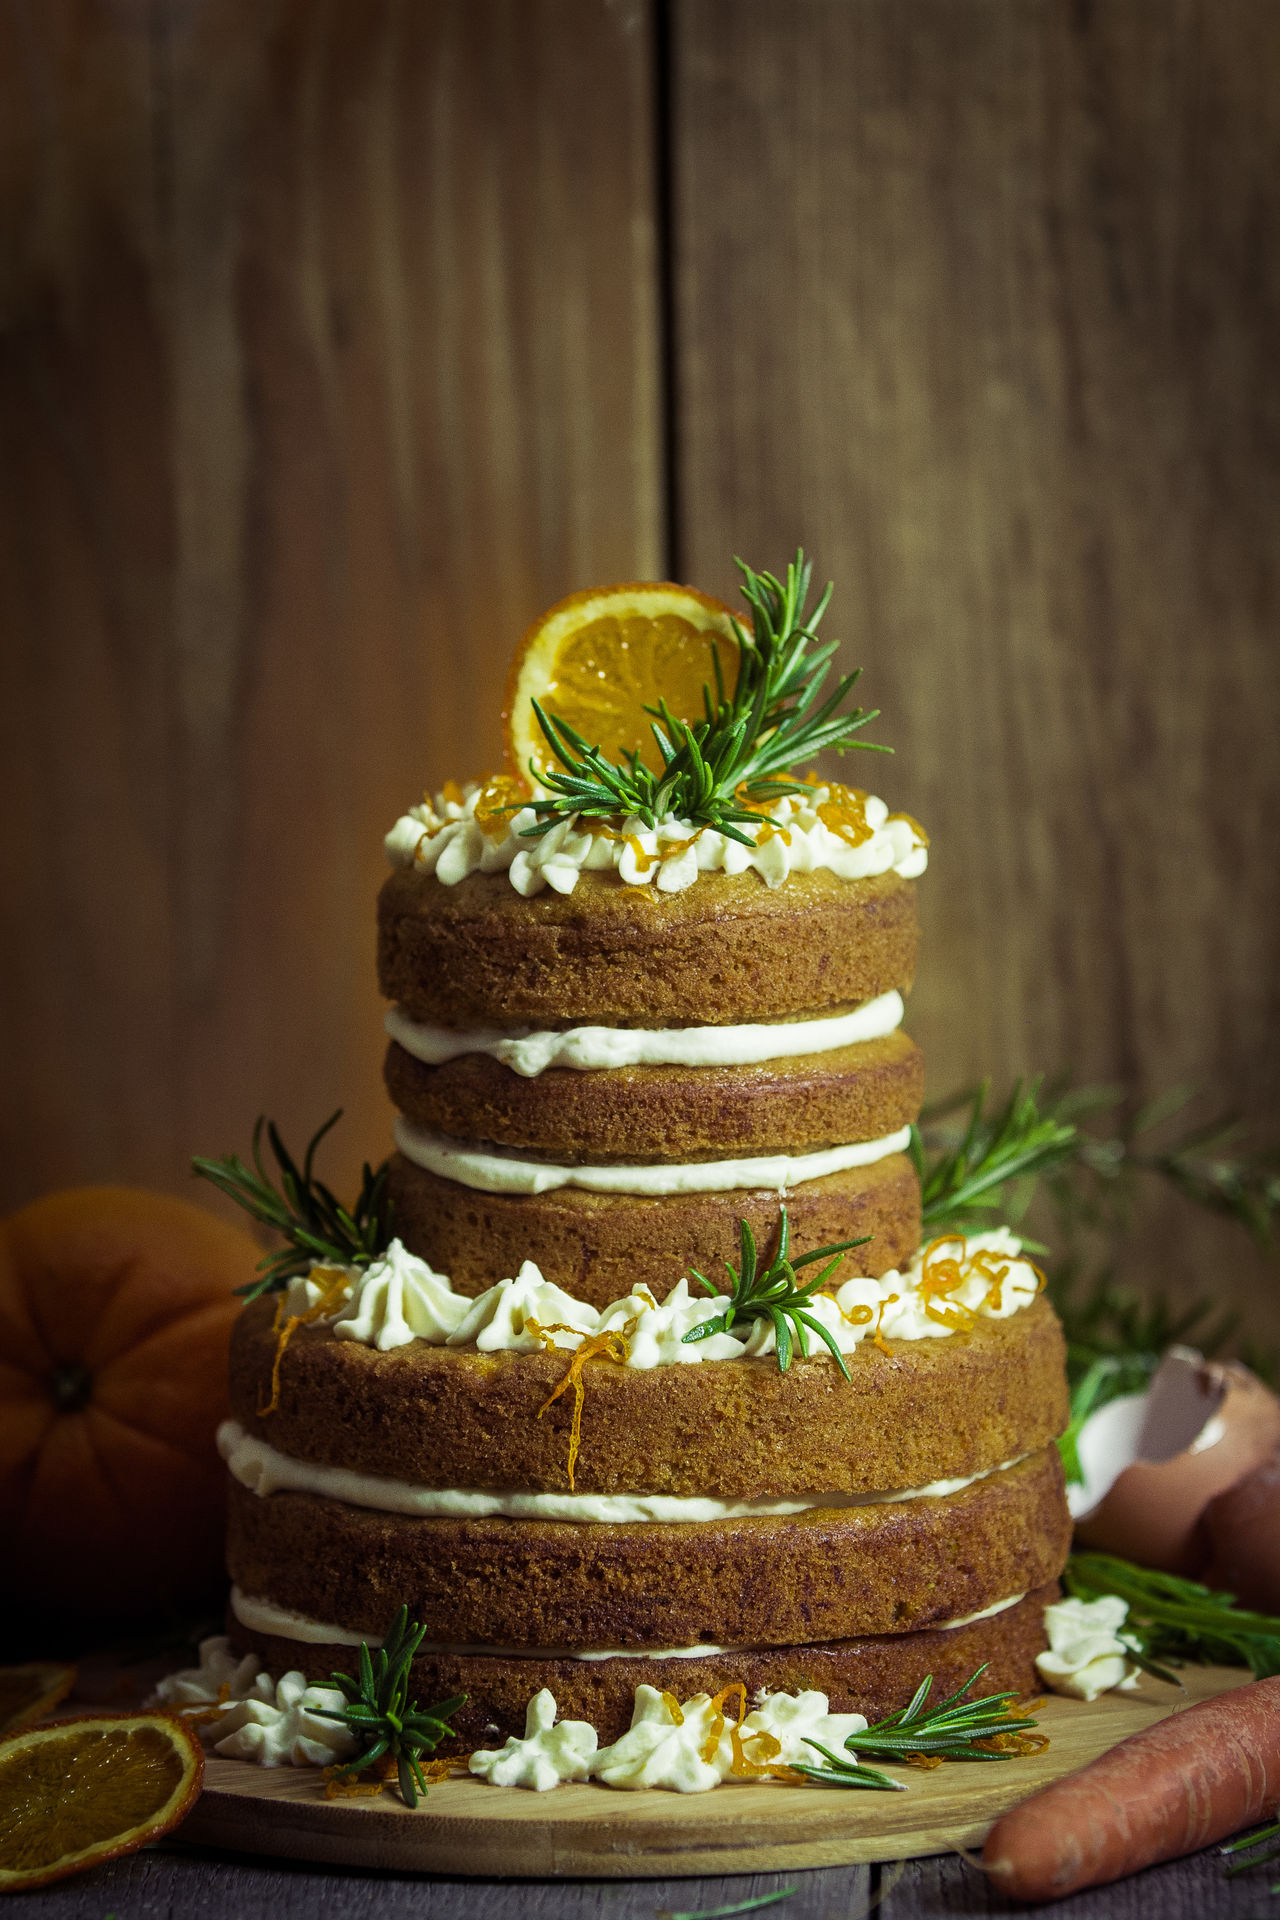 www.naked-cakes.de Baking Cake Carrots Carrots.  Close-up Courgette Courgettecake Delicious Dessert Food Food And Drink Food Porn Foodlove Foodphoto Foodphotography Foodporn Naked C Naked Cake Nakedcakes Nature Nature_collection Rosemary Sky Still Life Still Life Photography